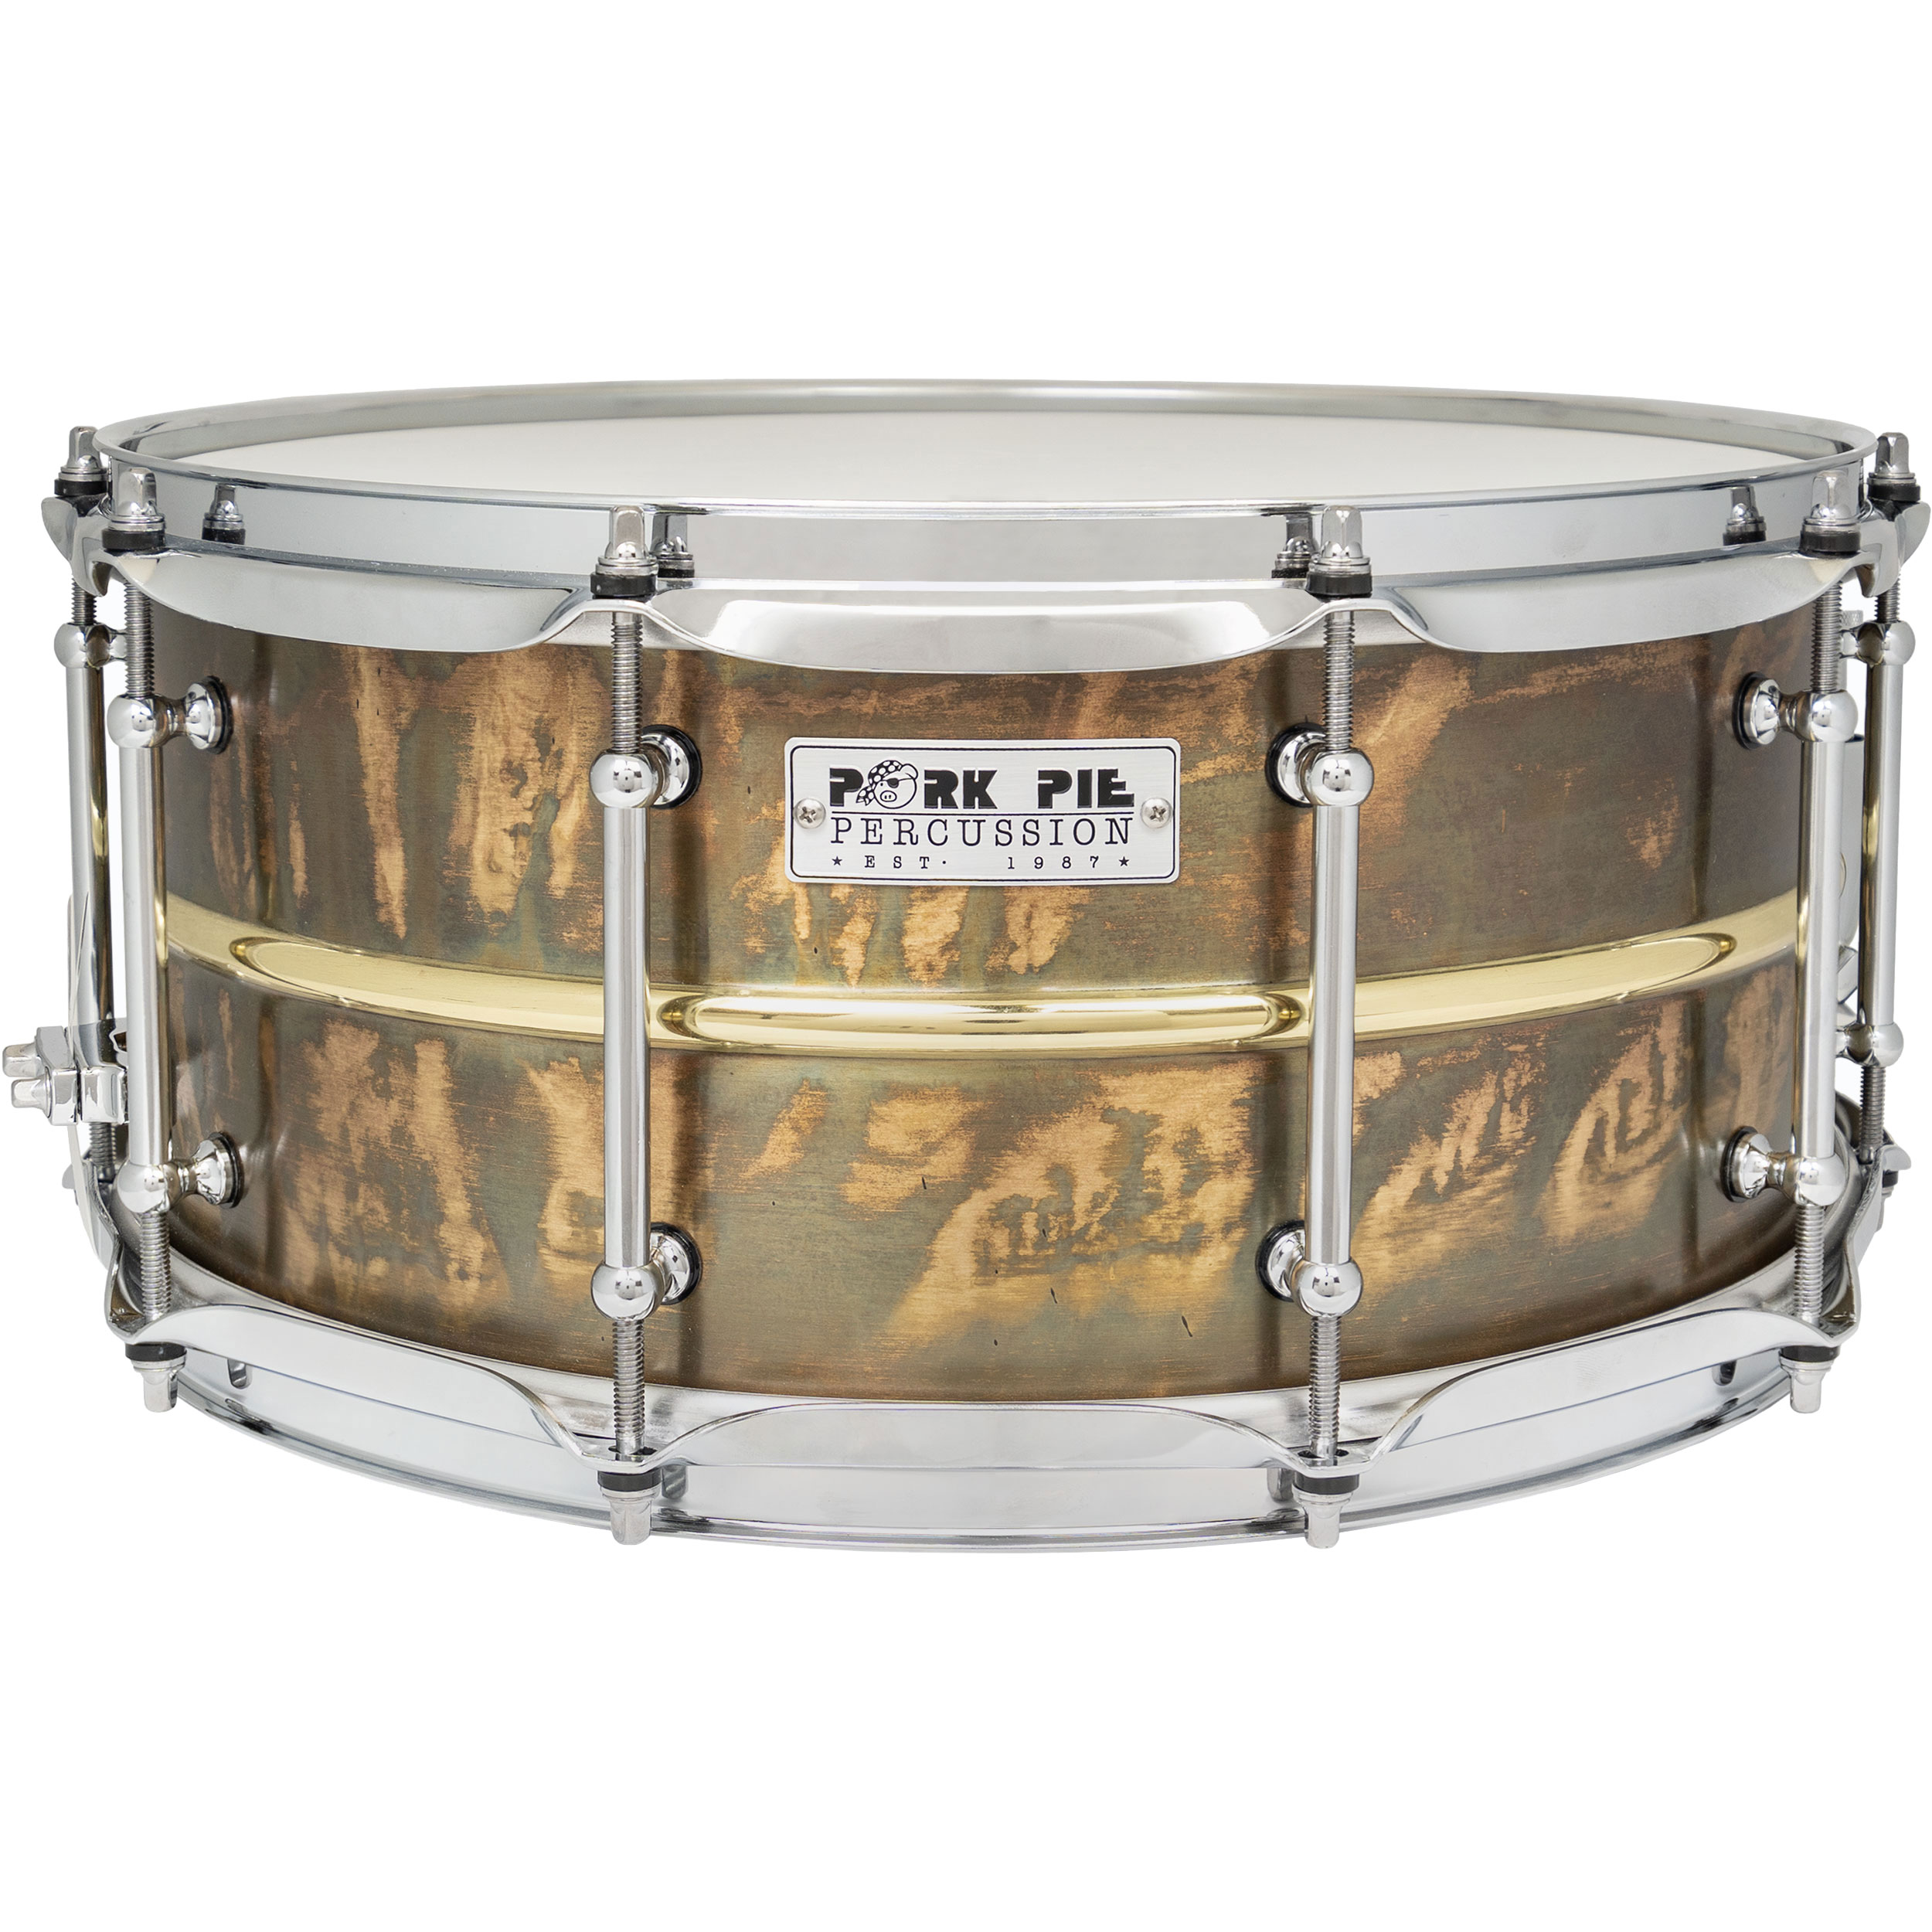 """Pork Pie Percussion 6.5"""" x 14"""" Patina Brass Snare Drum with Polished Bead"""